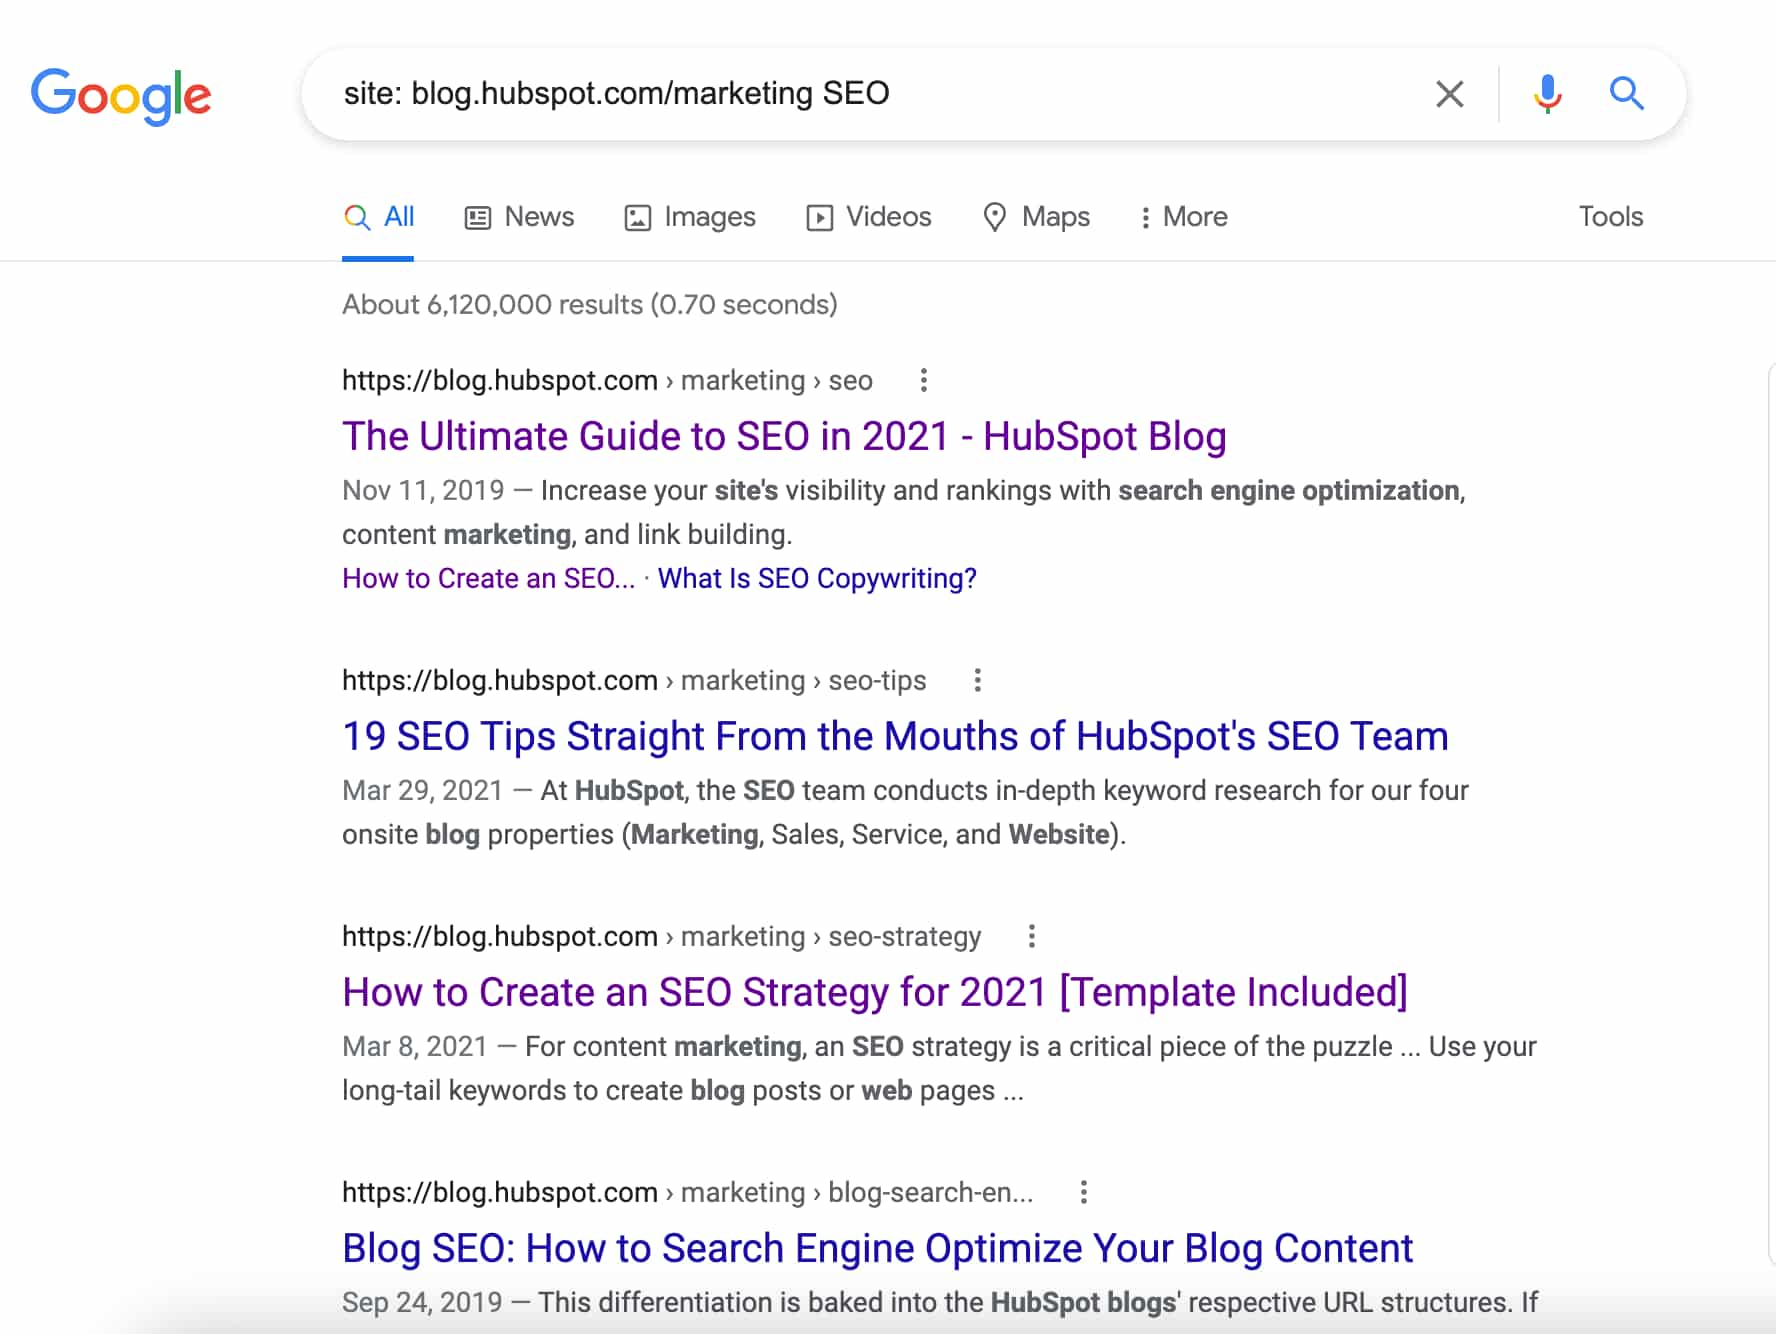 Site search step 2: type in the search bar: site:www.website.com/ search term